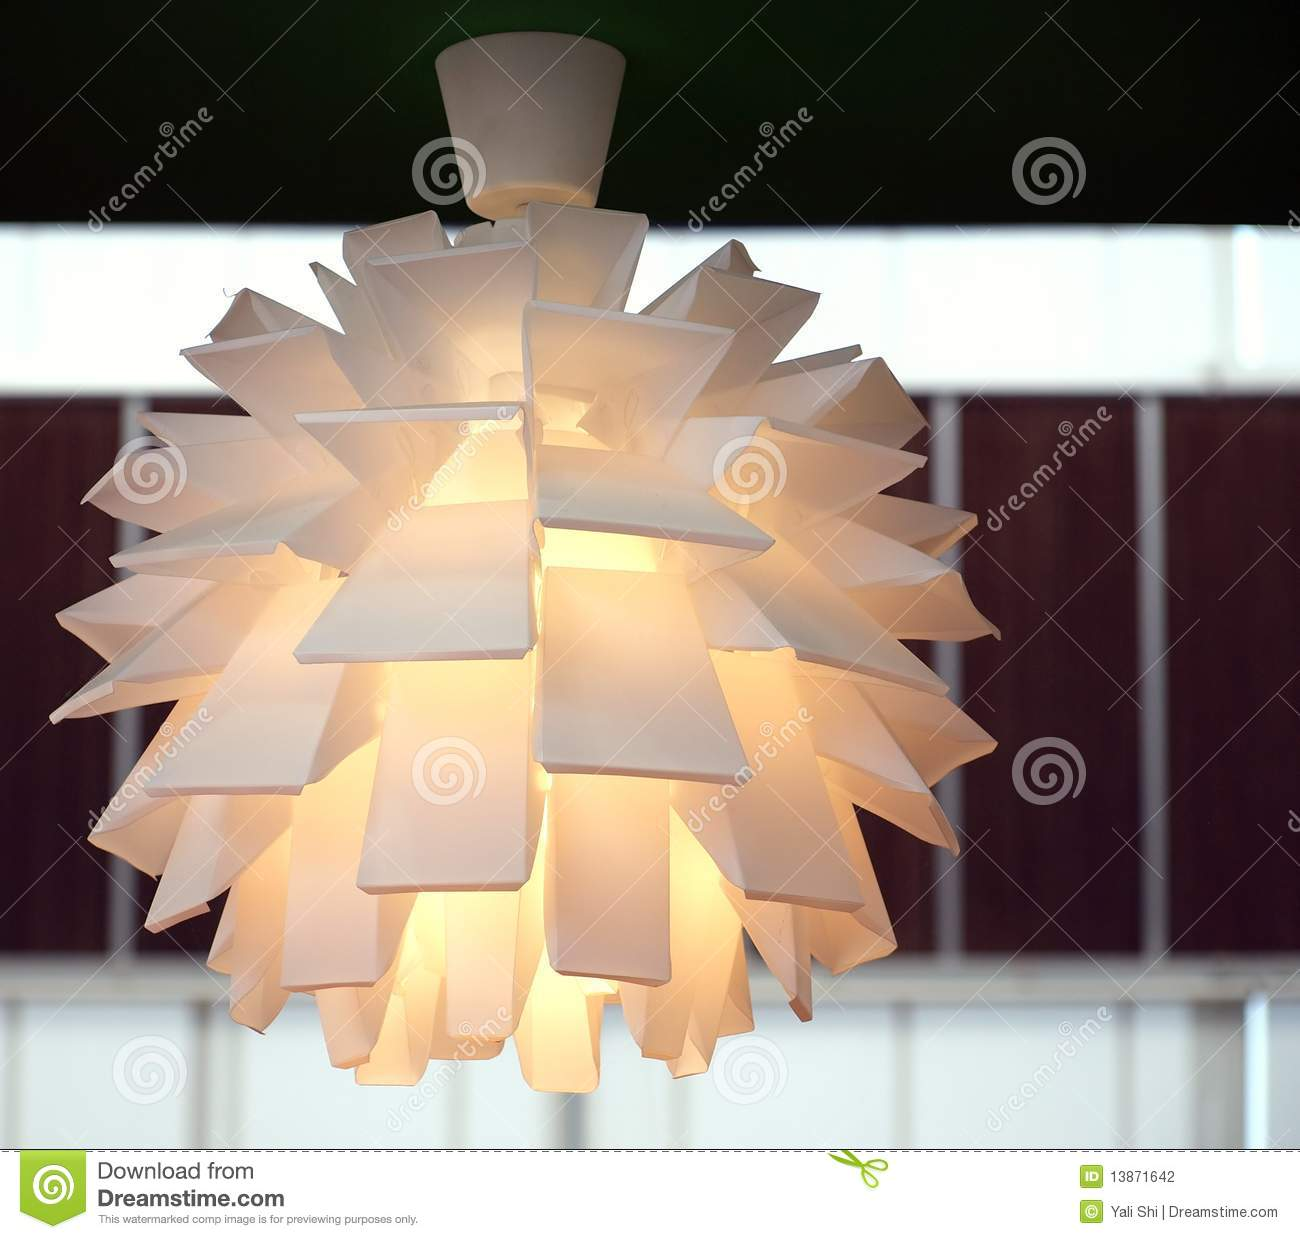 modern light fixtures  bedroom and living room image collections - modern light fixture stock photography image  modern light fixture